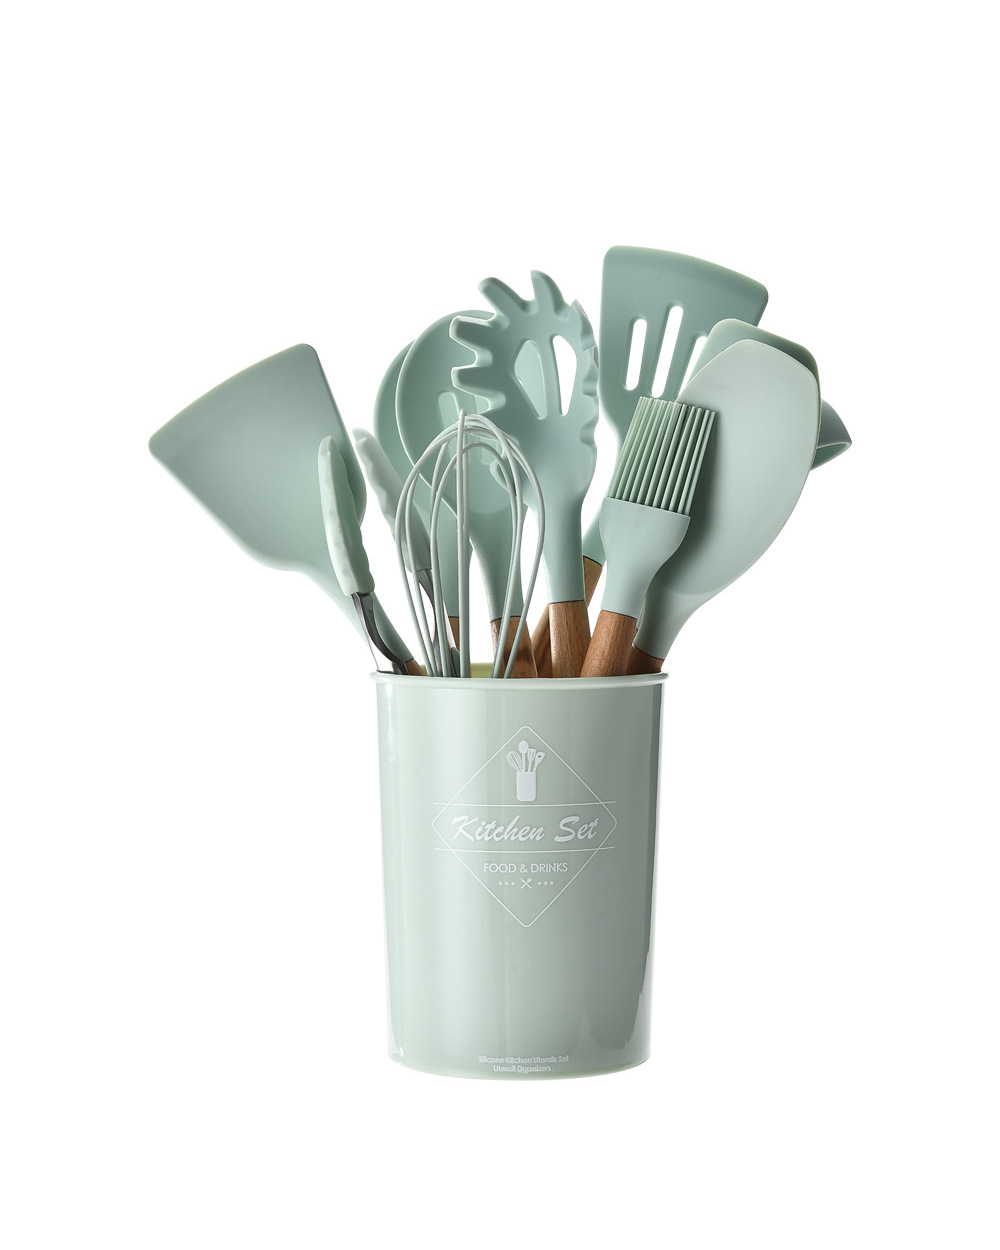 Silicone Cooking Utensils  Silicone Cooking Utensils 3